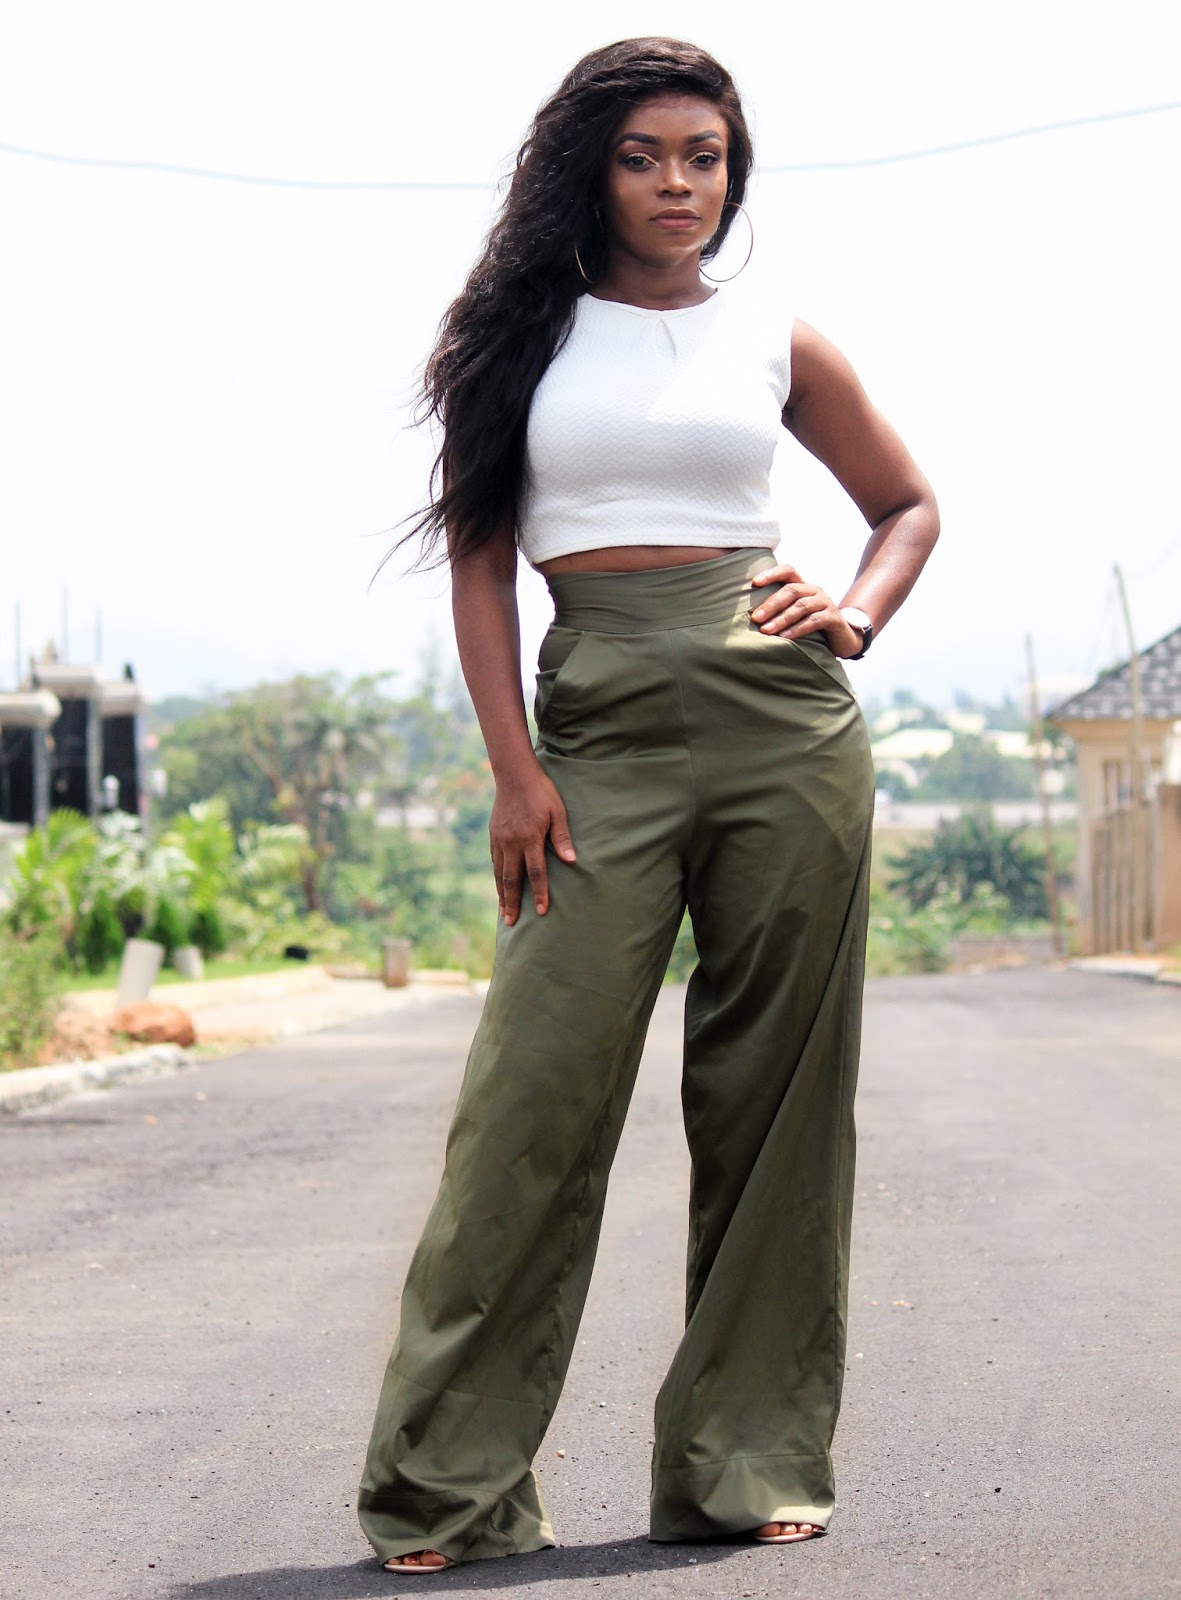 KHAKI PALAZZO PANTS -Porshher  Khaki Coloured pants with Boohoo white crop top